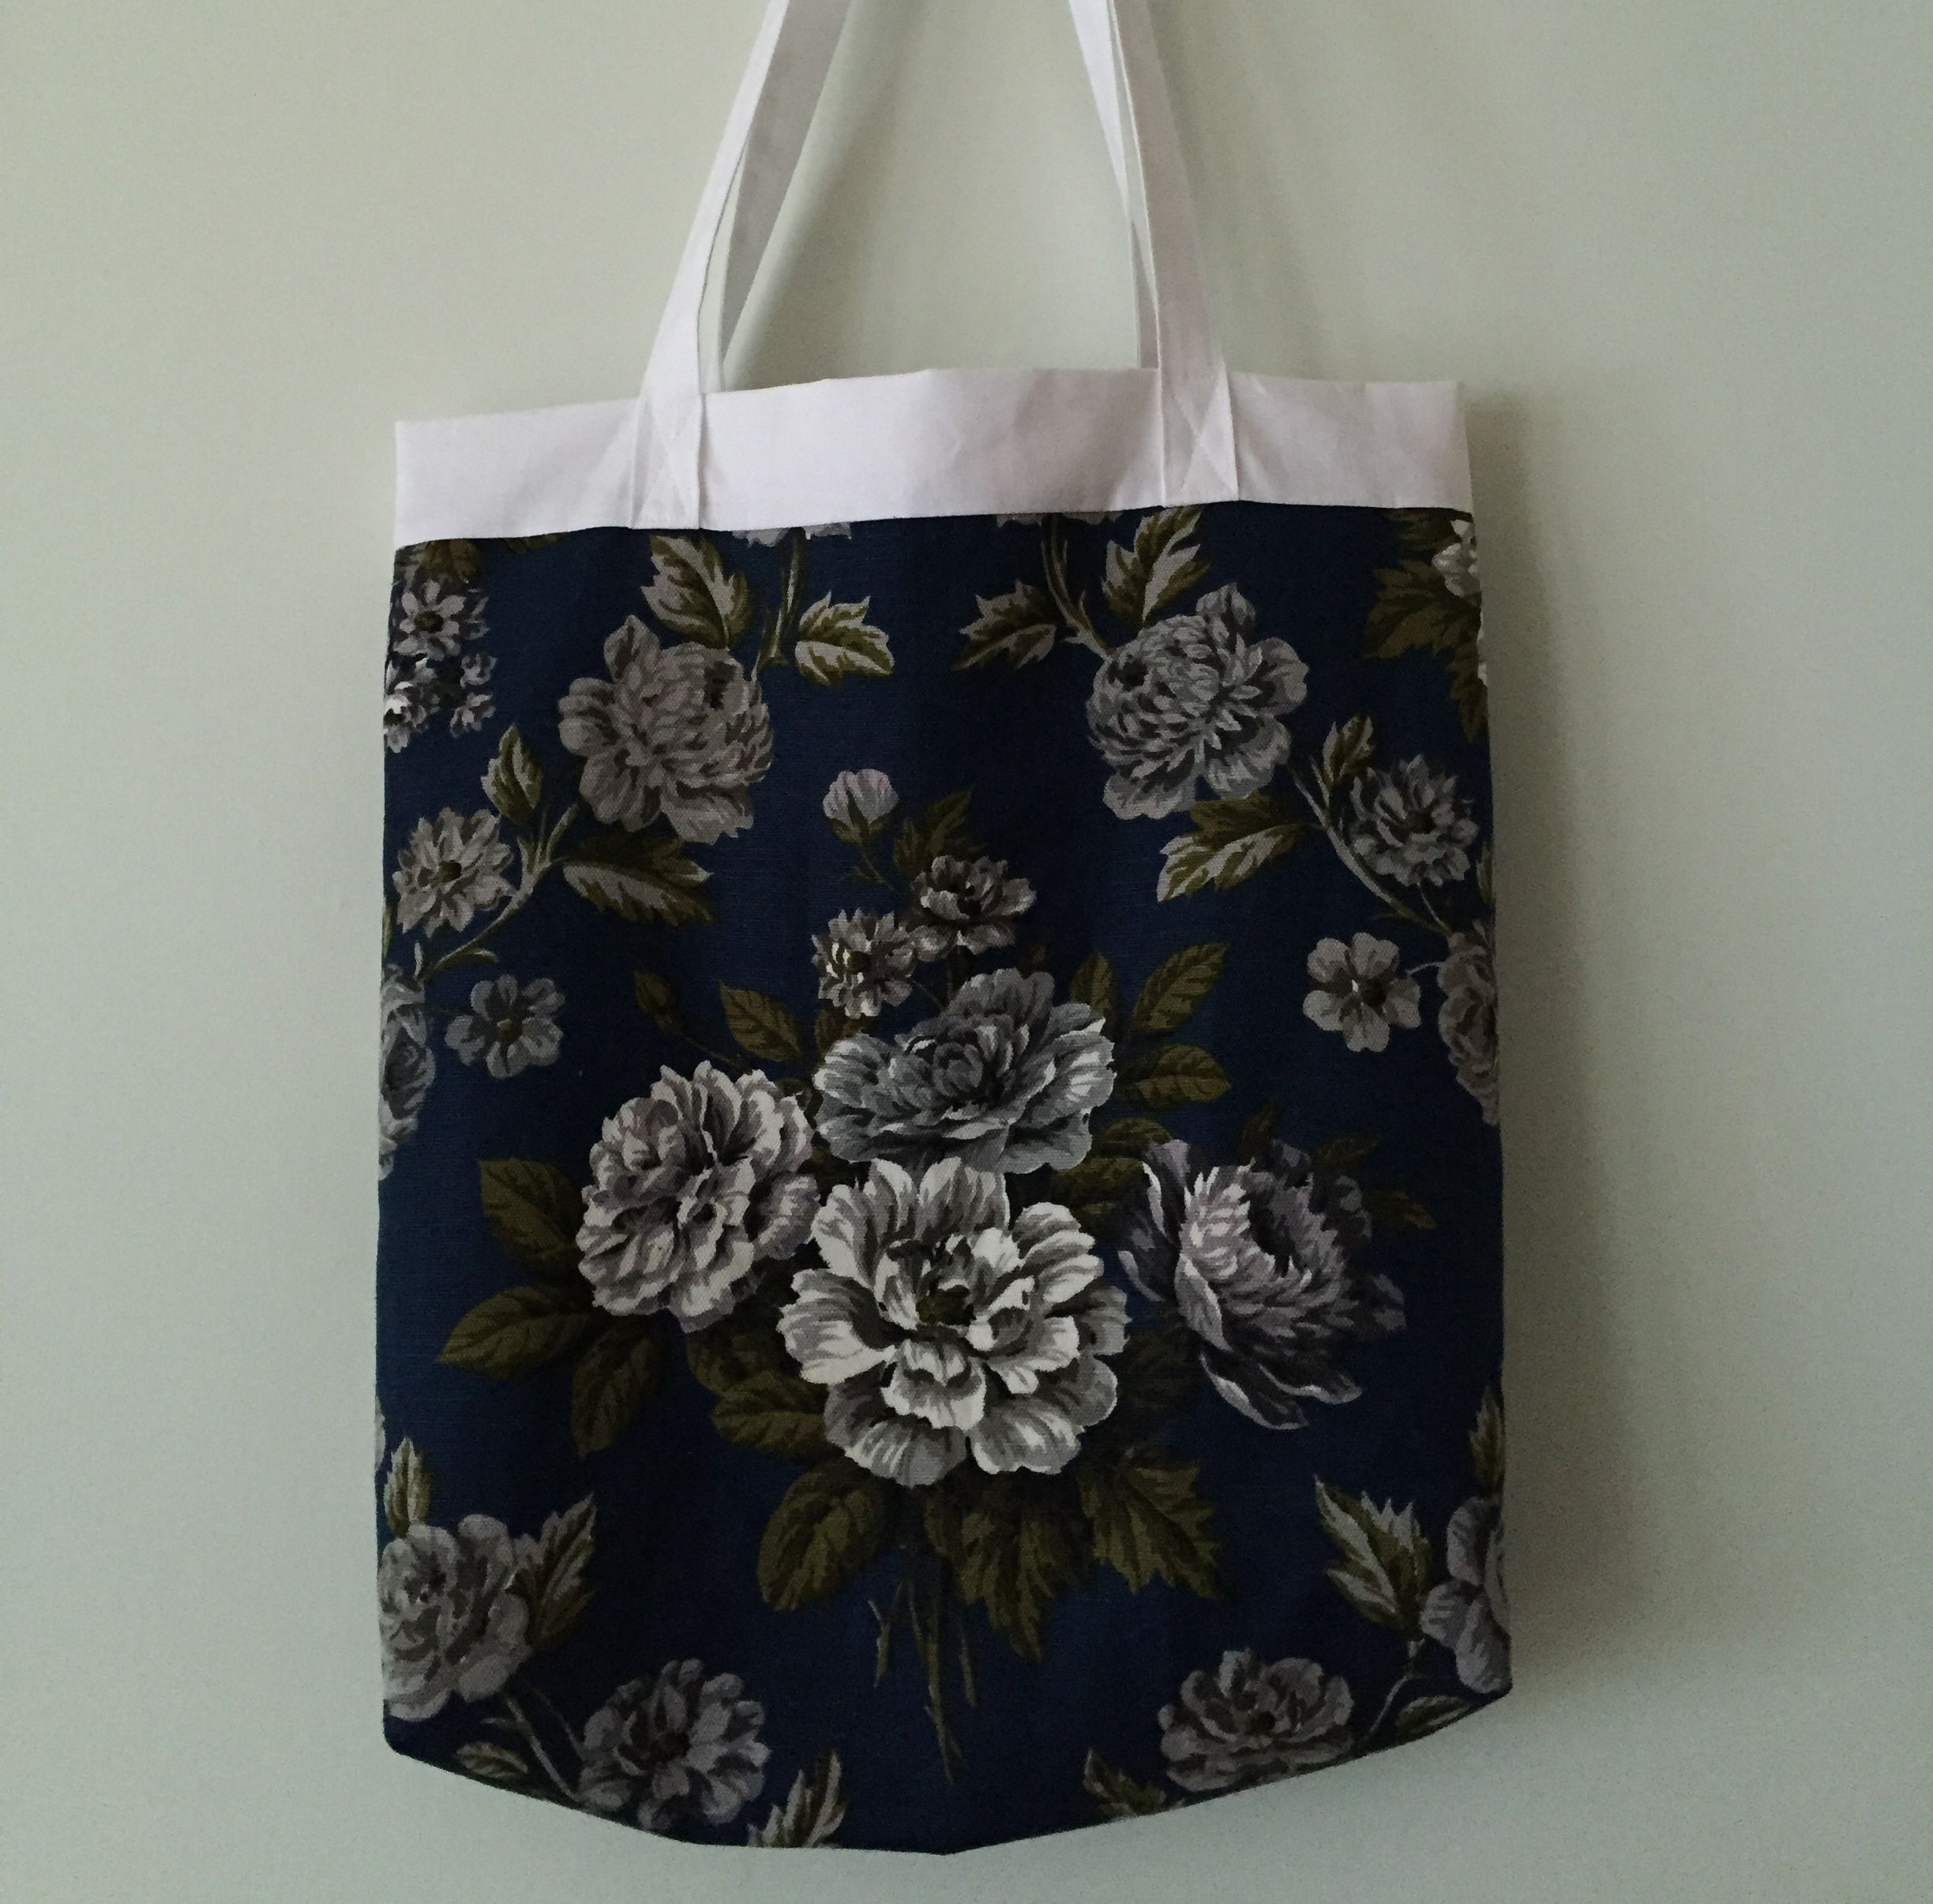 A handmade quality item A tote bag made with vintage fabric